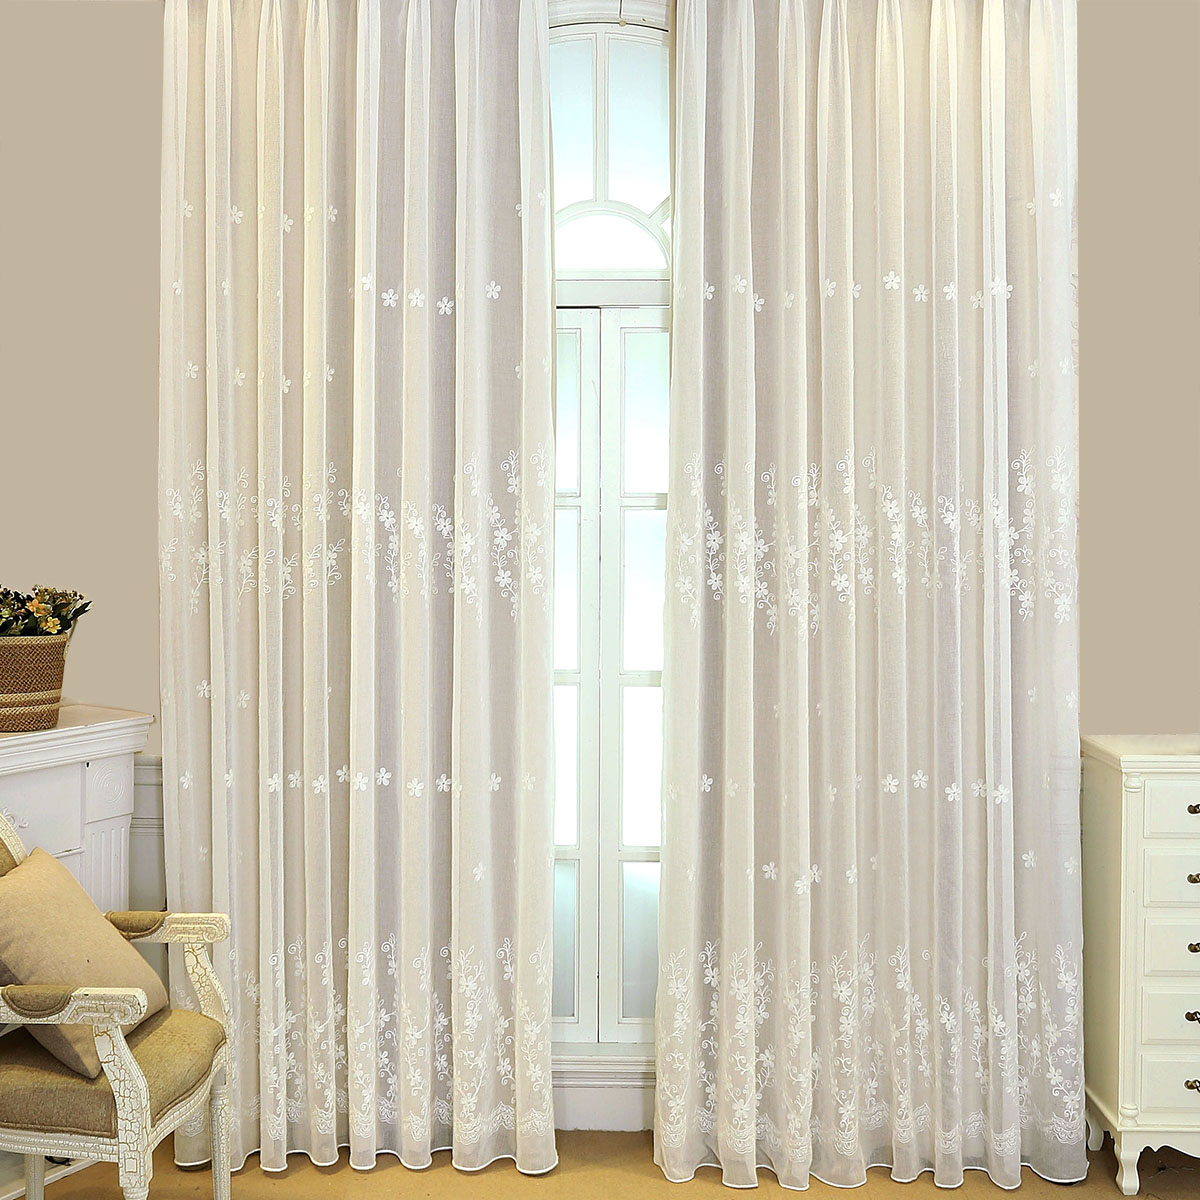 How to choose linings for voile curtains